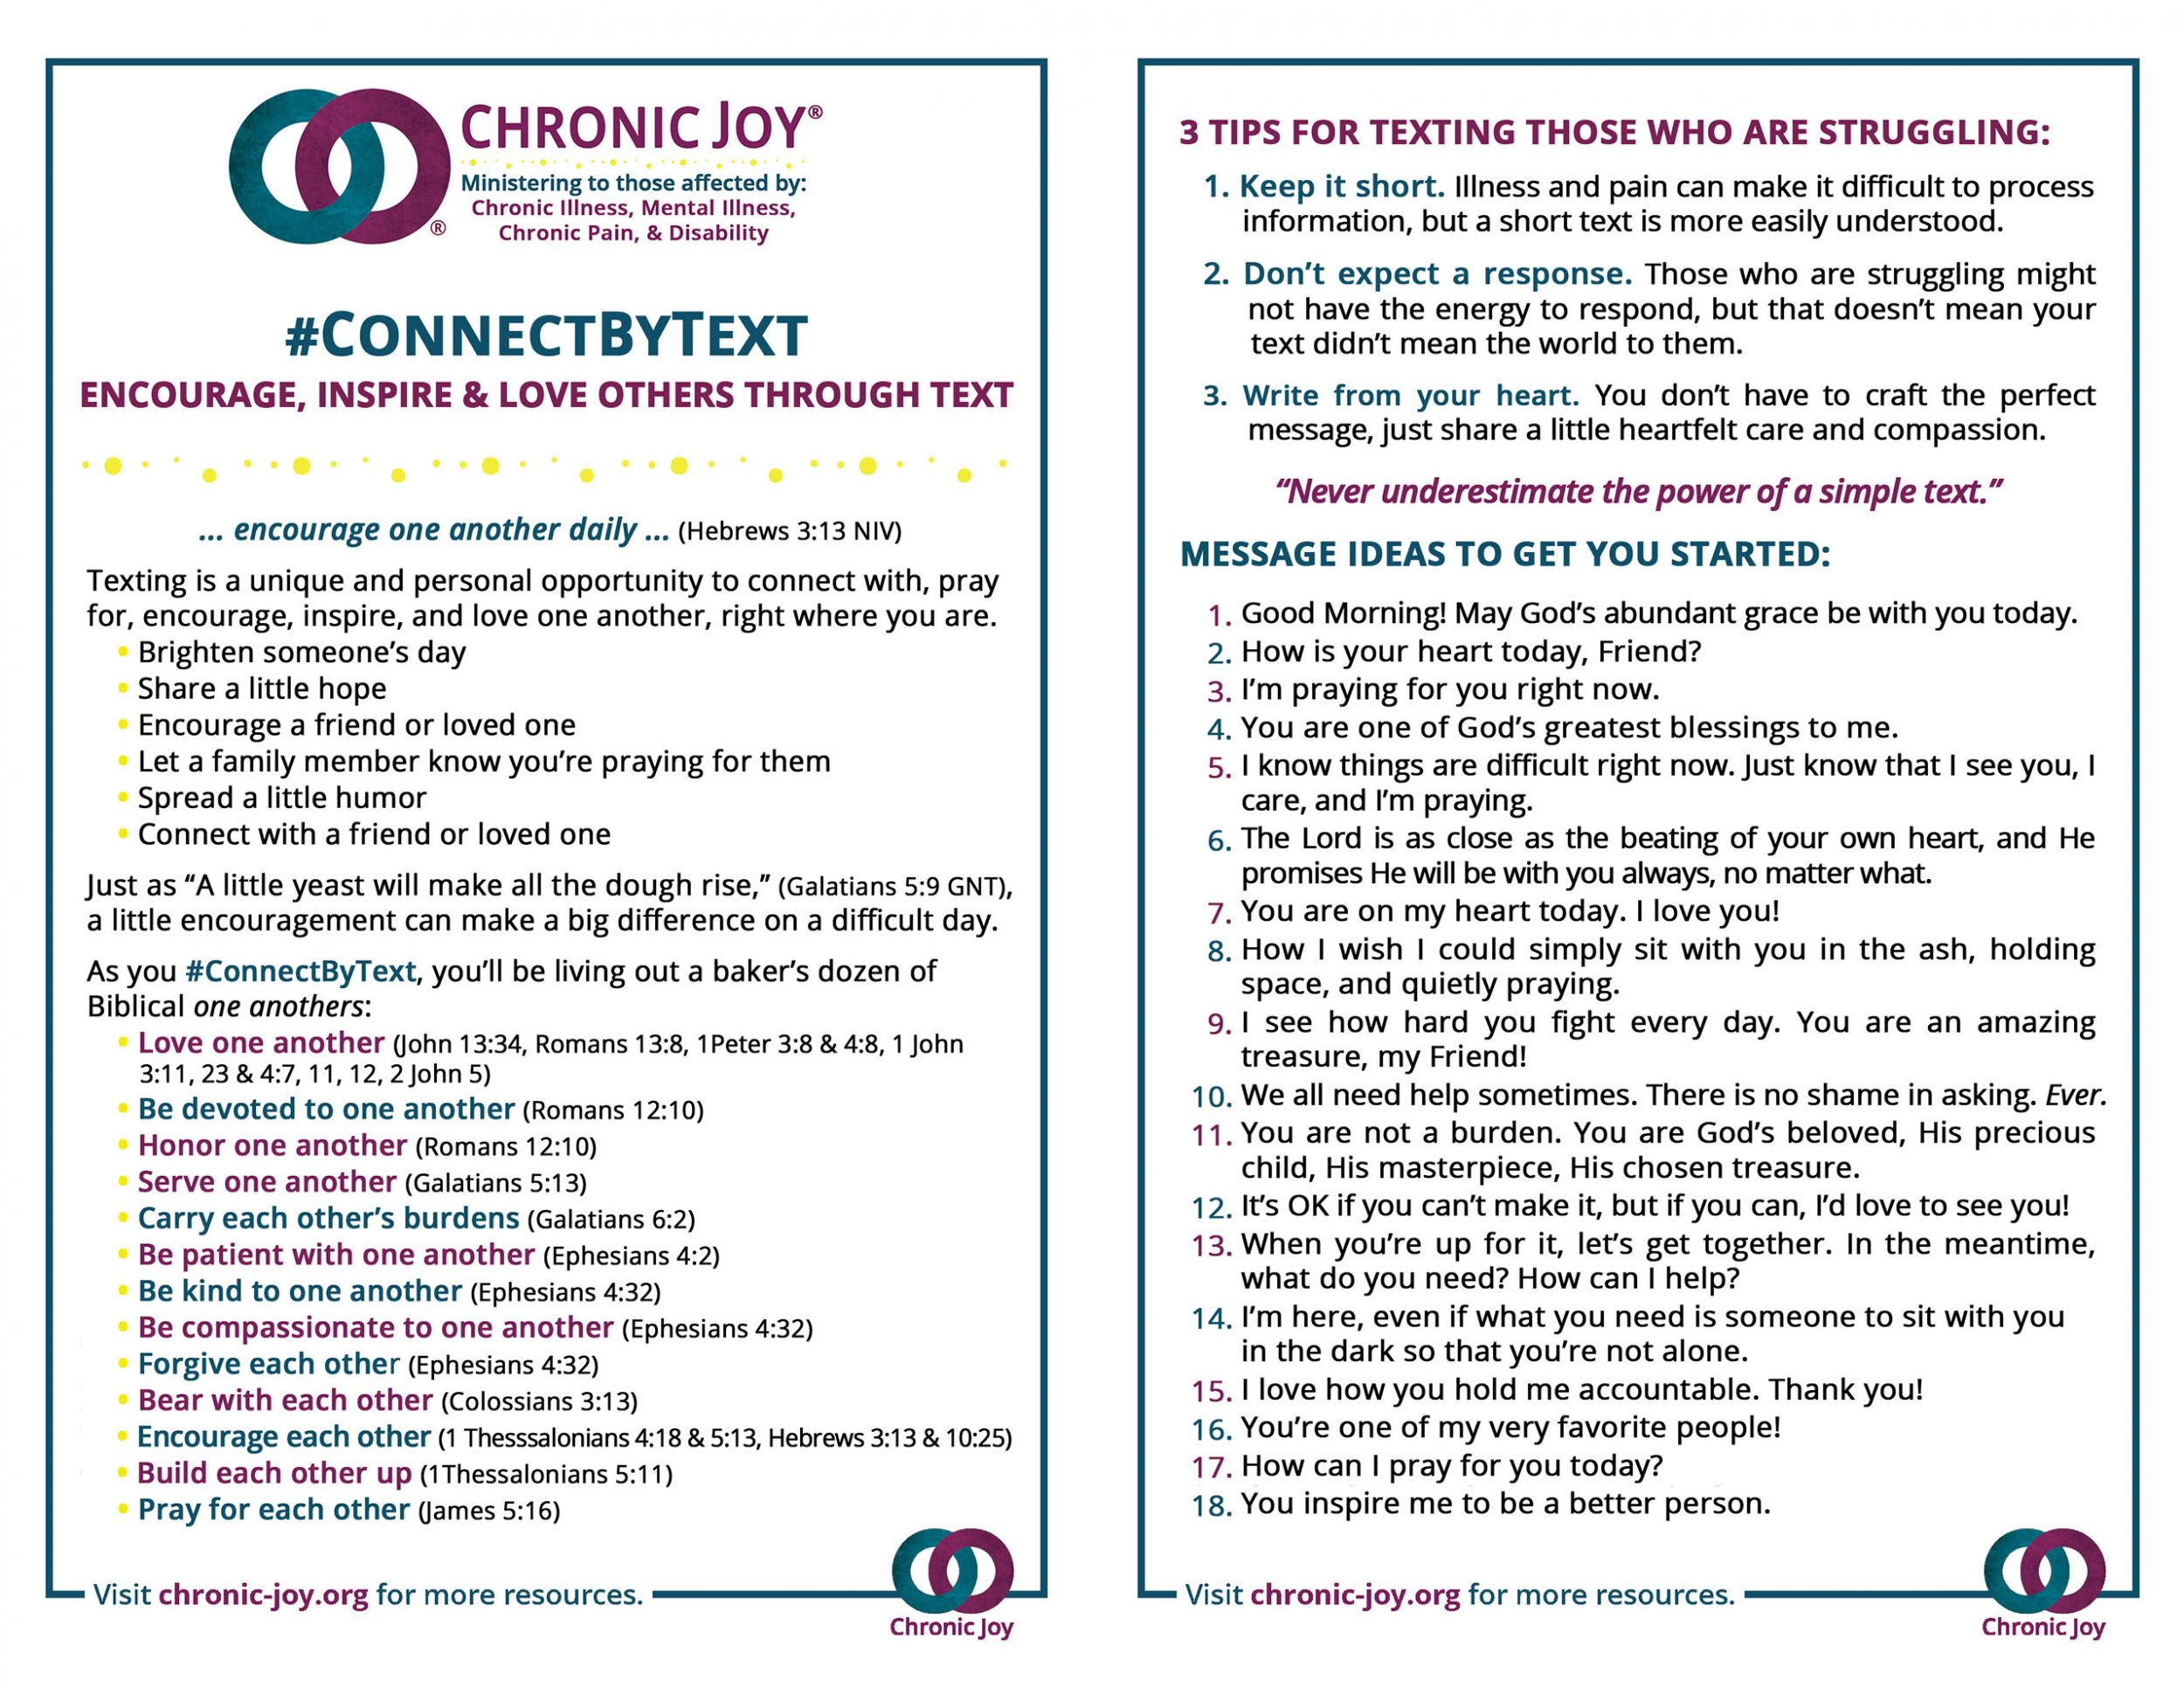 #ConnectByText Guide